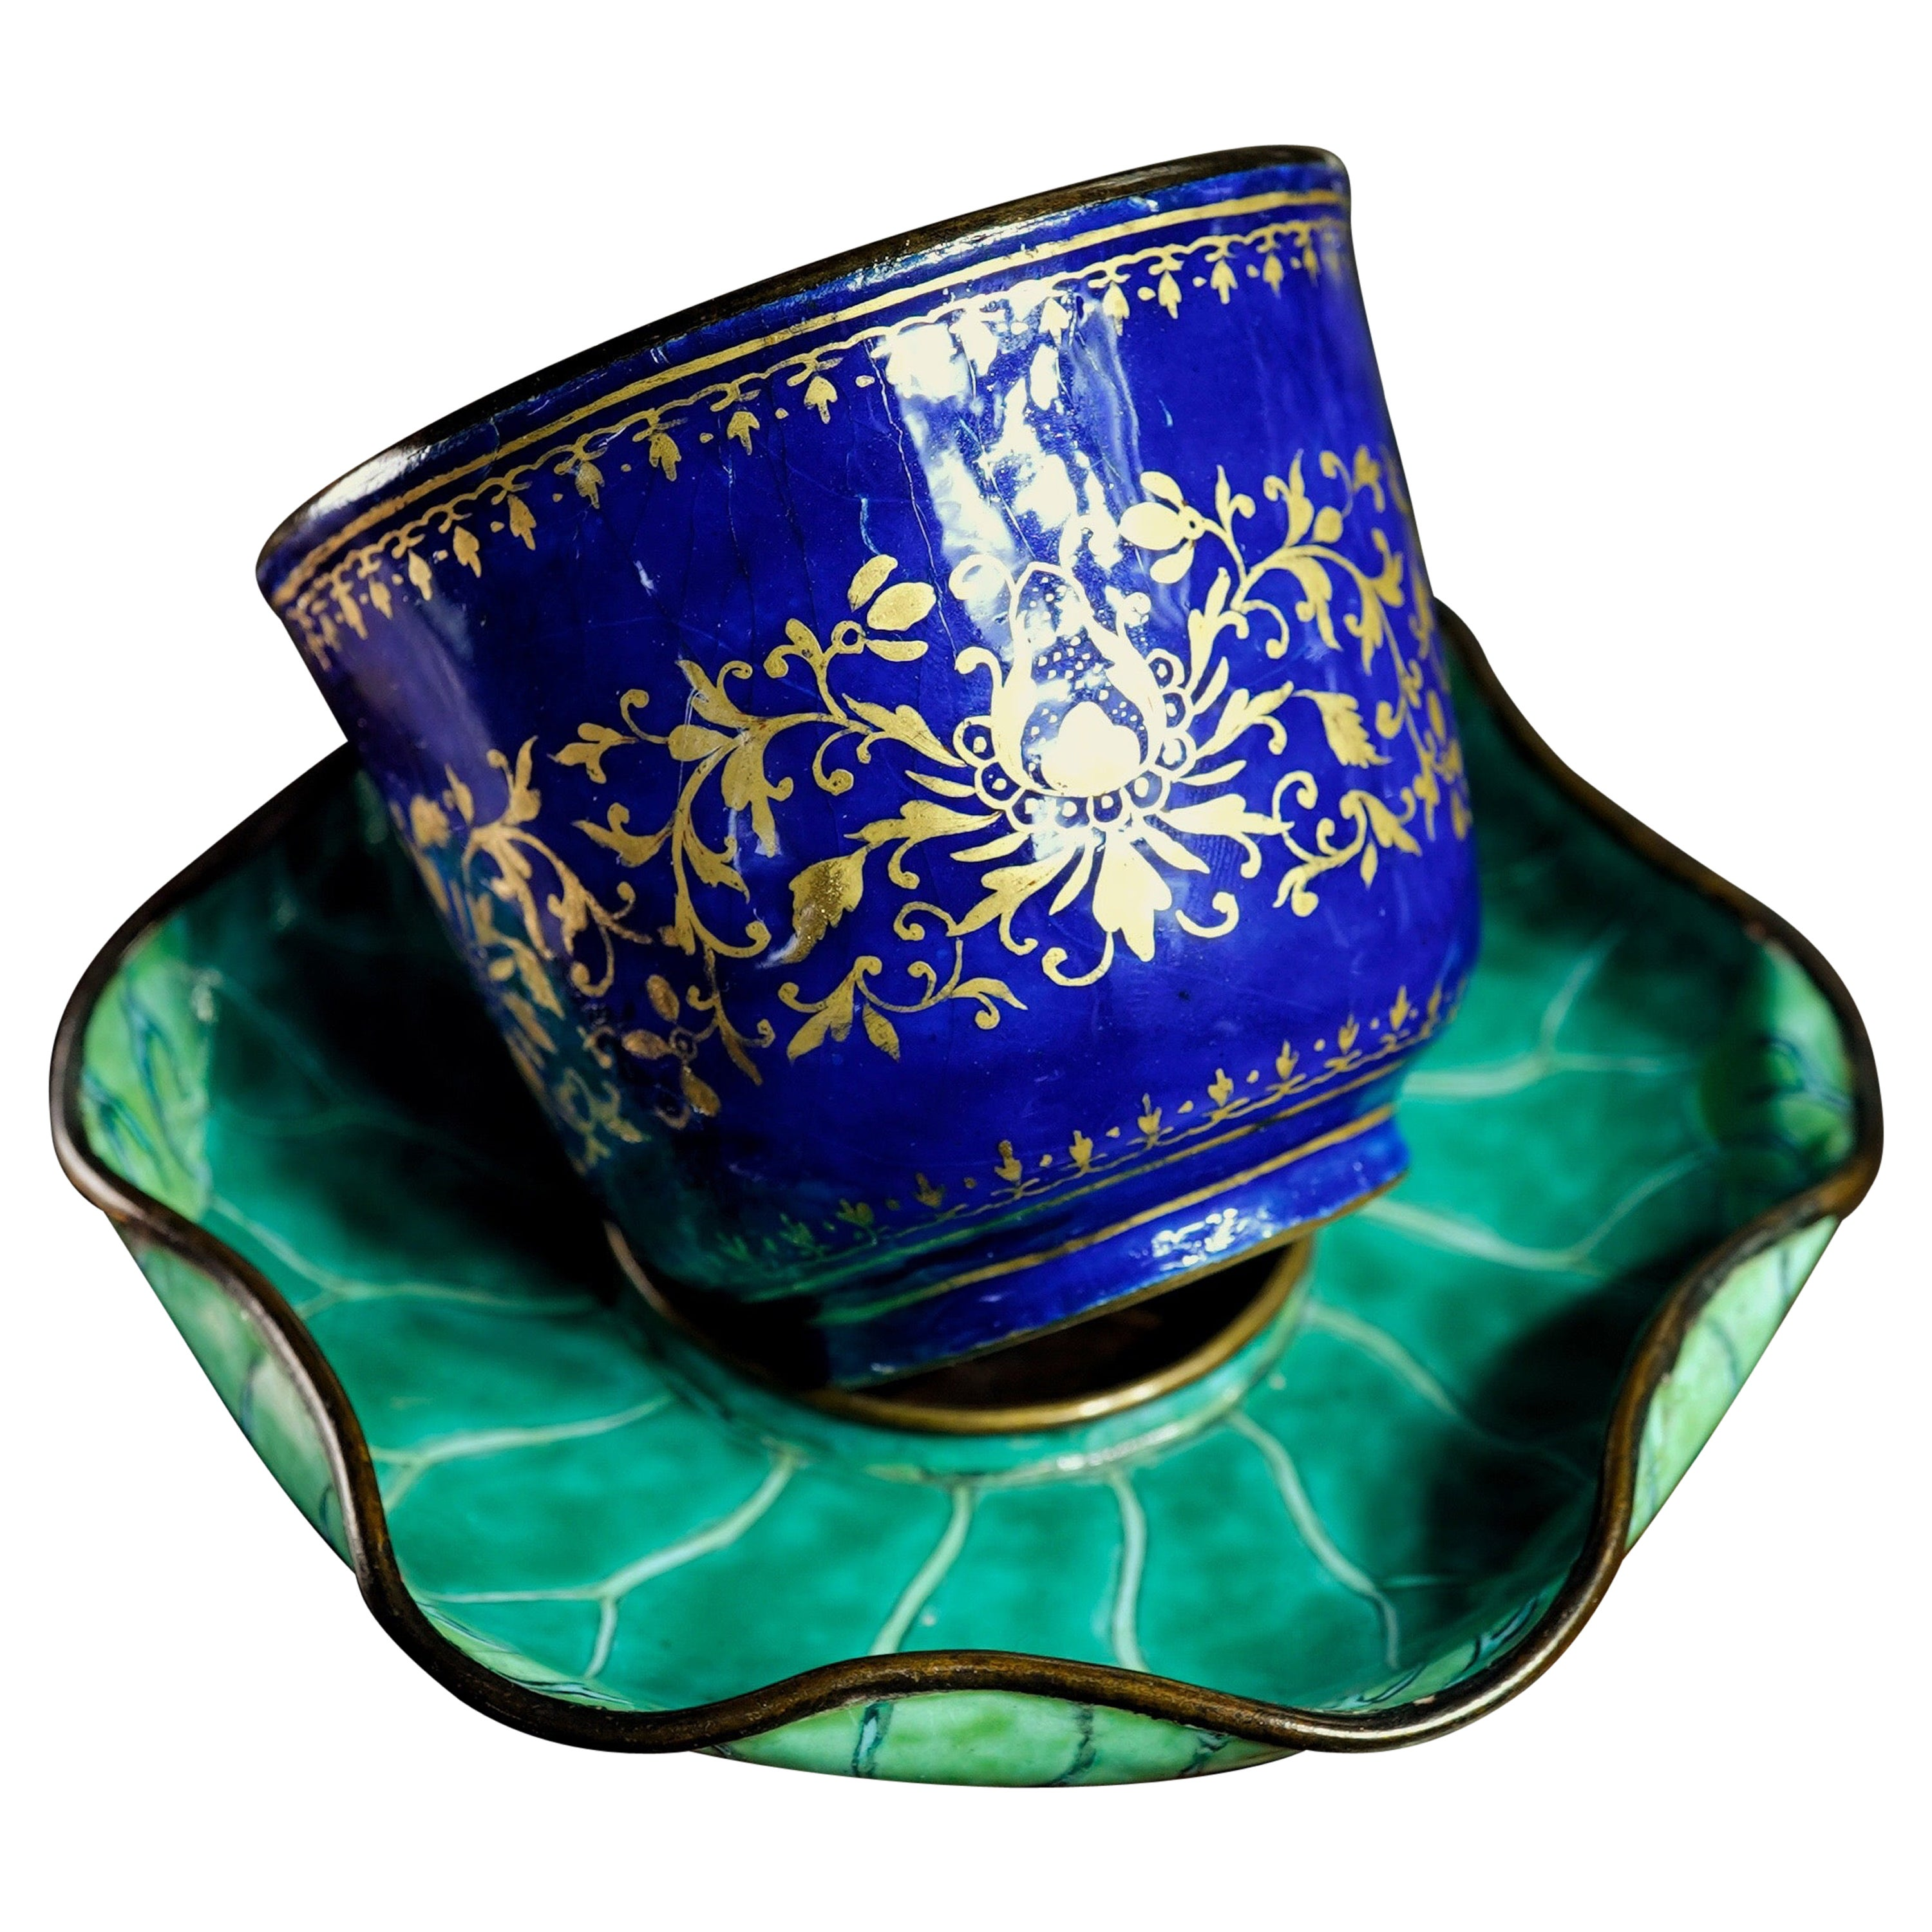 Chinese Enamel Cup in Lotus Leaf Stand, 18th Century